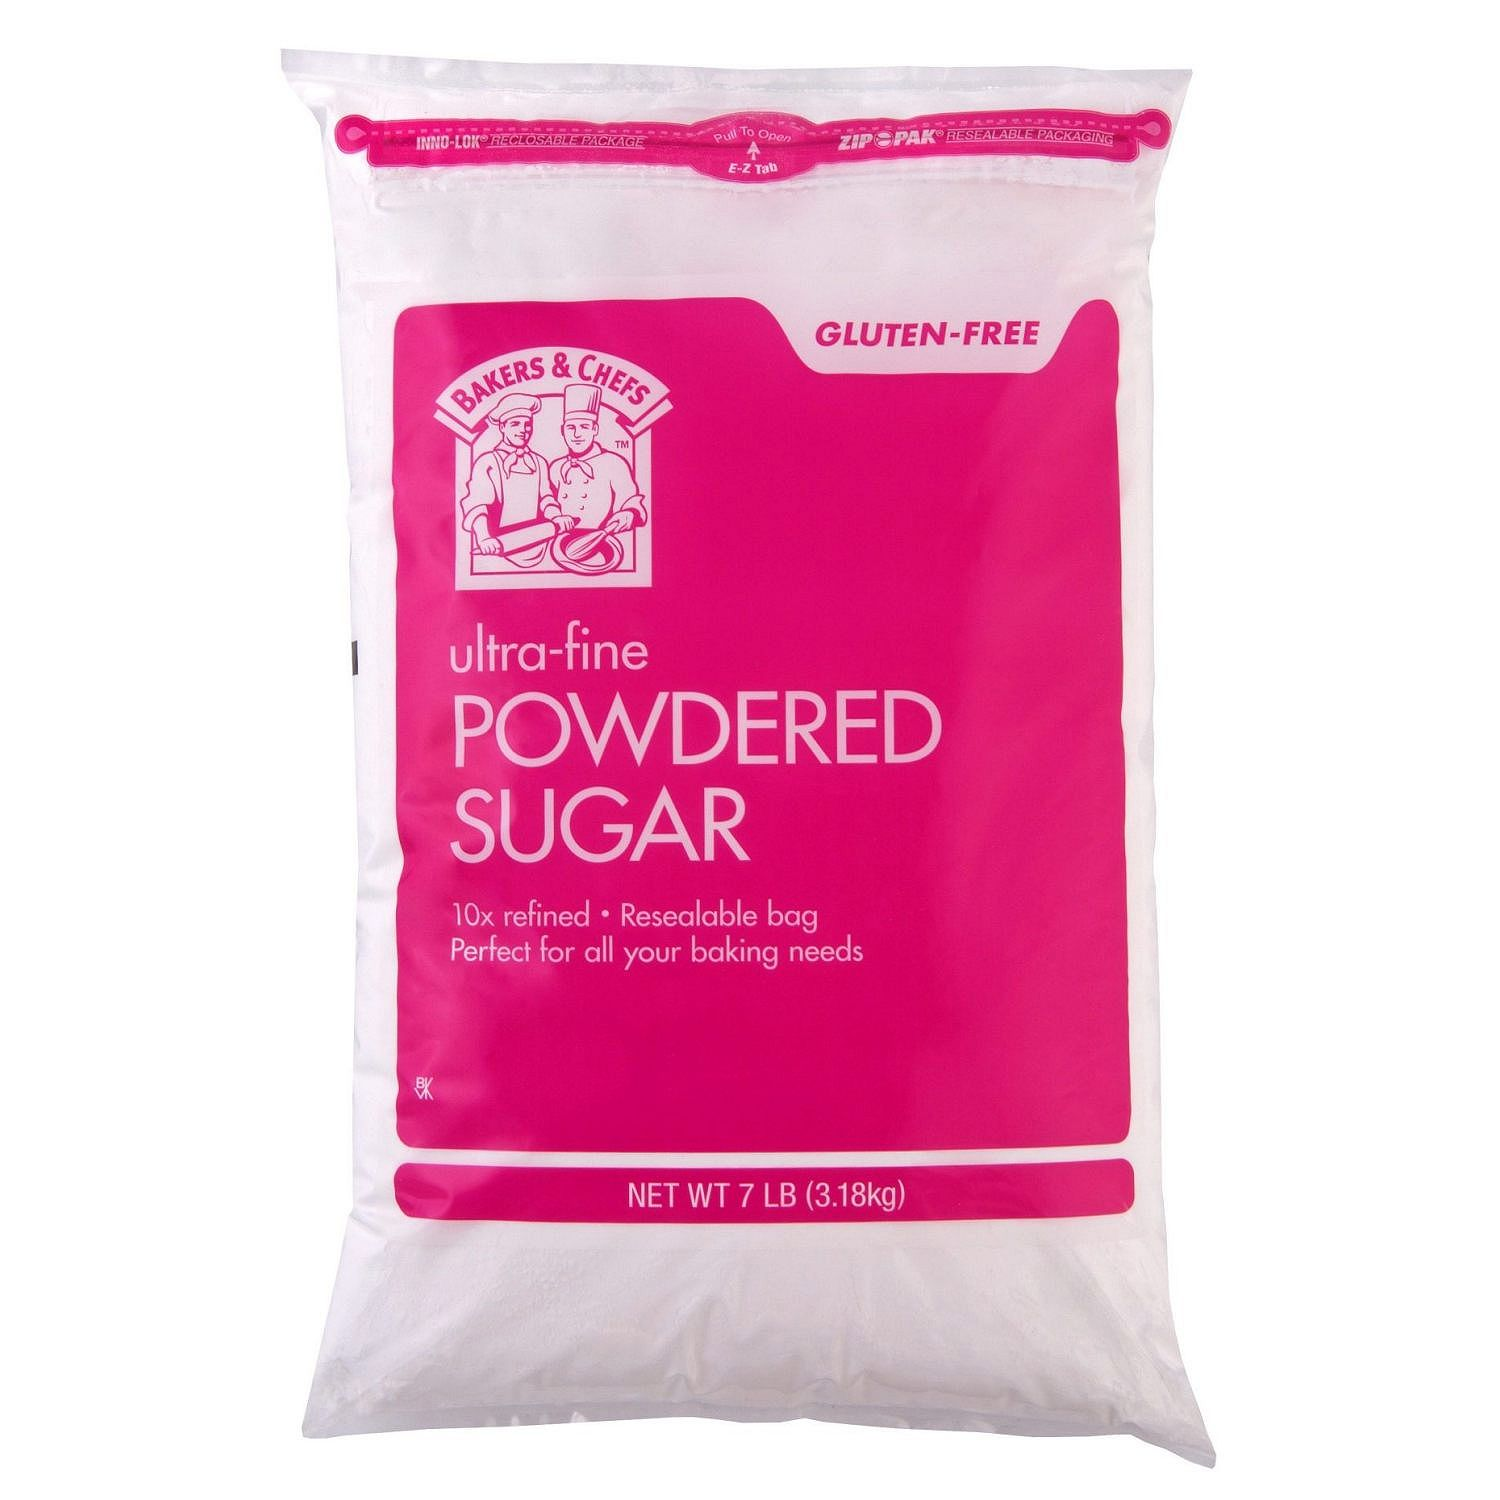 Daily Chef 10x Powdered Sugar - 7 lb. bag